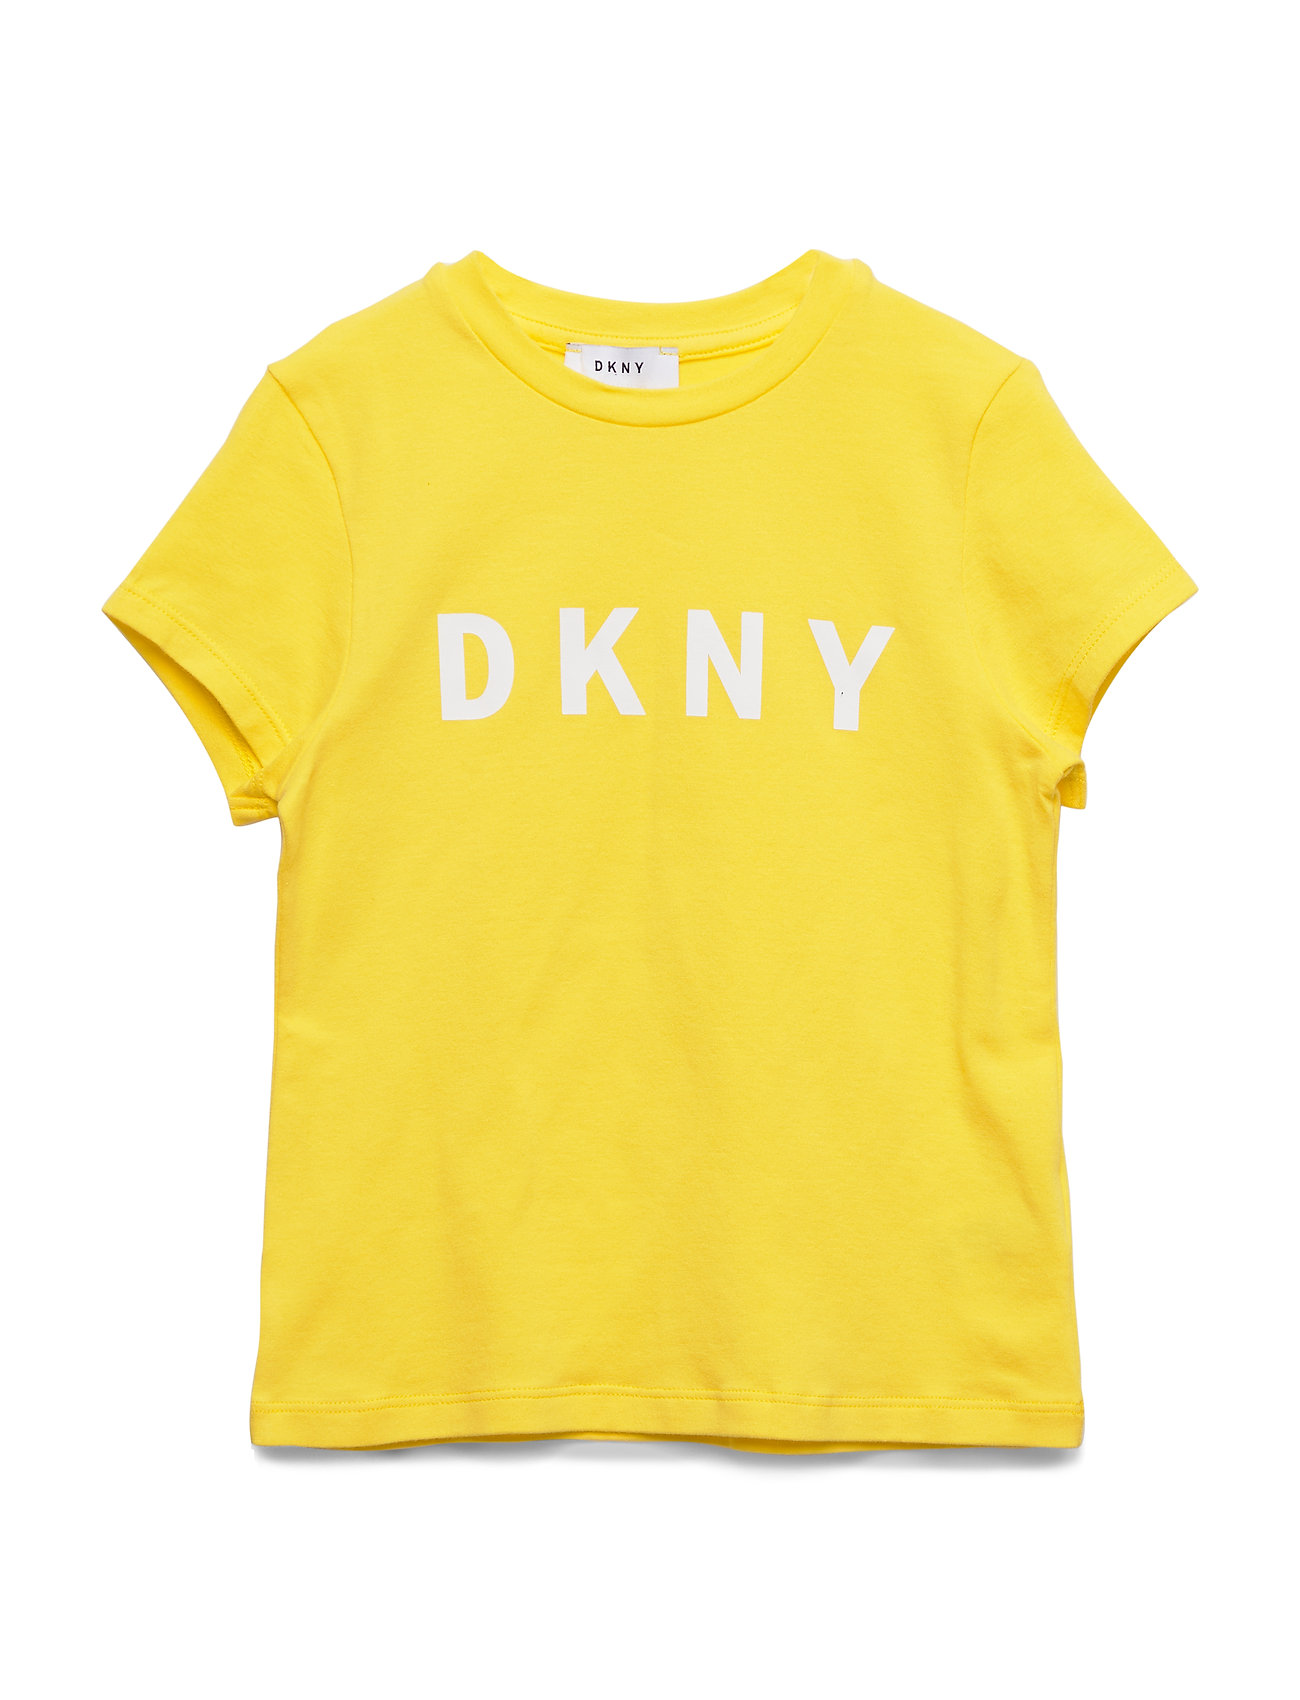 DKNY kids SHORT SLEEVES TEE-SHIRT - YELLOW